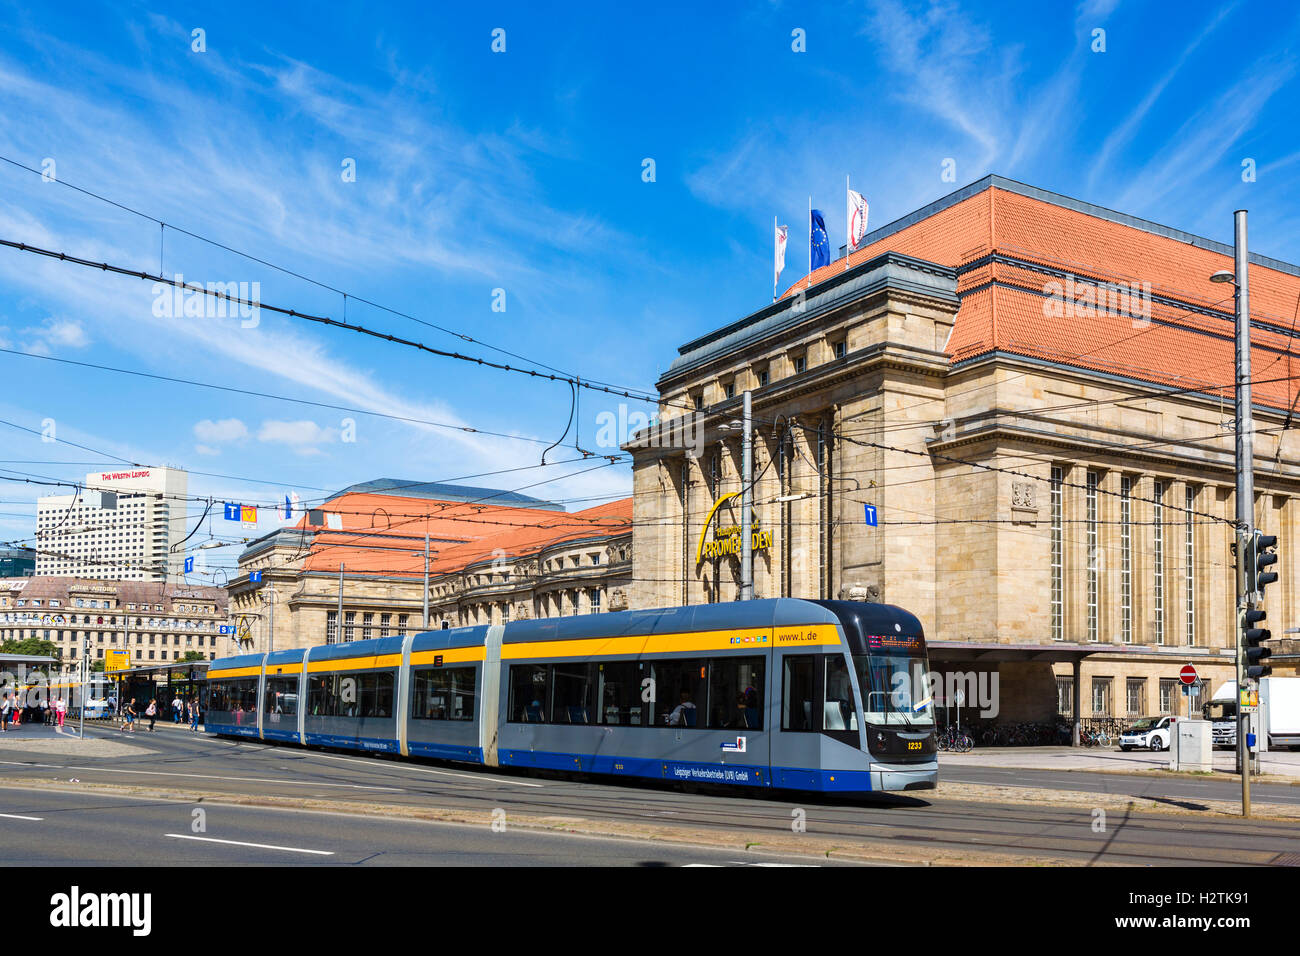 Tram in front of the Hauptbahnhof, one of the largest railway stations in Europe, Leipzig, Saxony, Germany - Stock Image